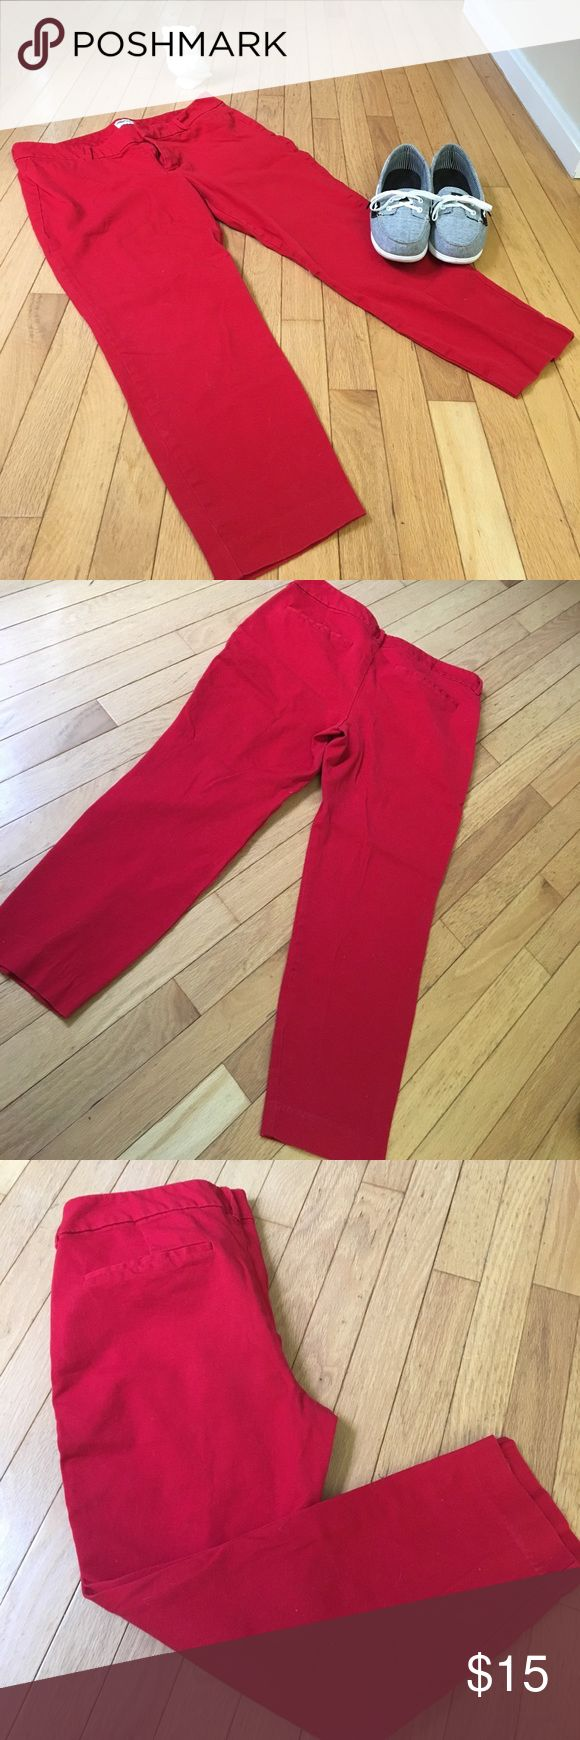 🌹 Old Navy Pixie Red Coral Capris Lovely Pixie Mid-Rise Ankle Pants with double hook-and-bar closure with interior button closure. This pant includes slant pockets in the front and decorative faux welt pockets in back. Four way stretch for a supremely flattering fit and feel! 🌹🌹 Old Navy Pants Capris